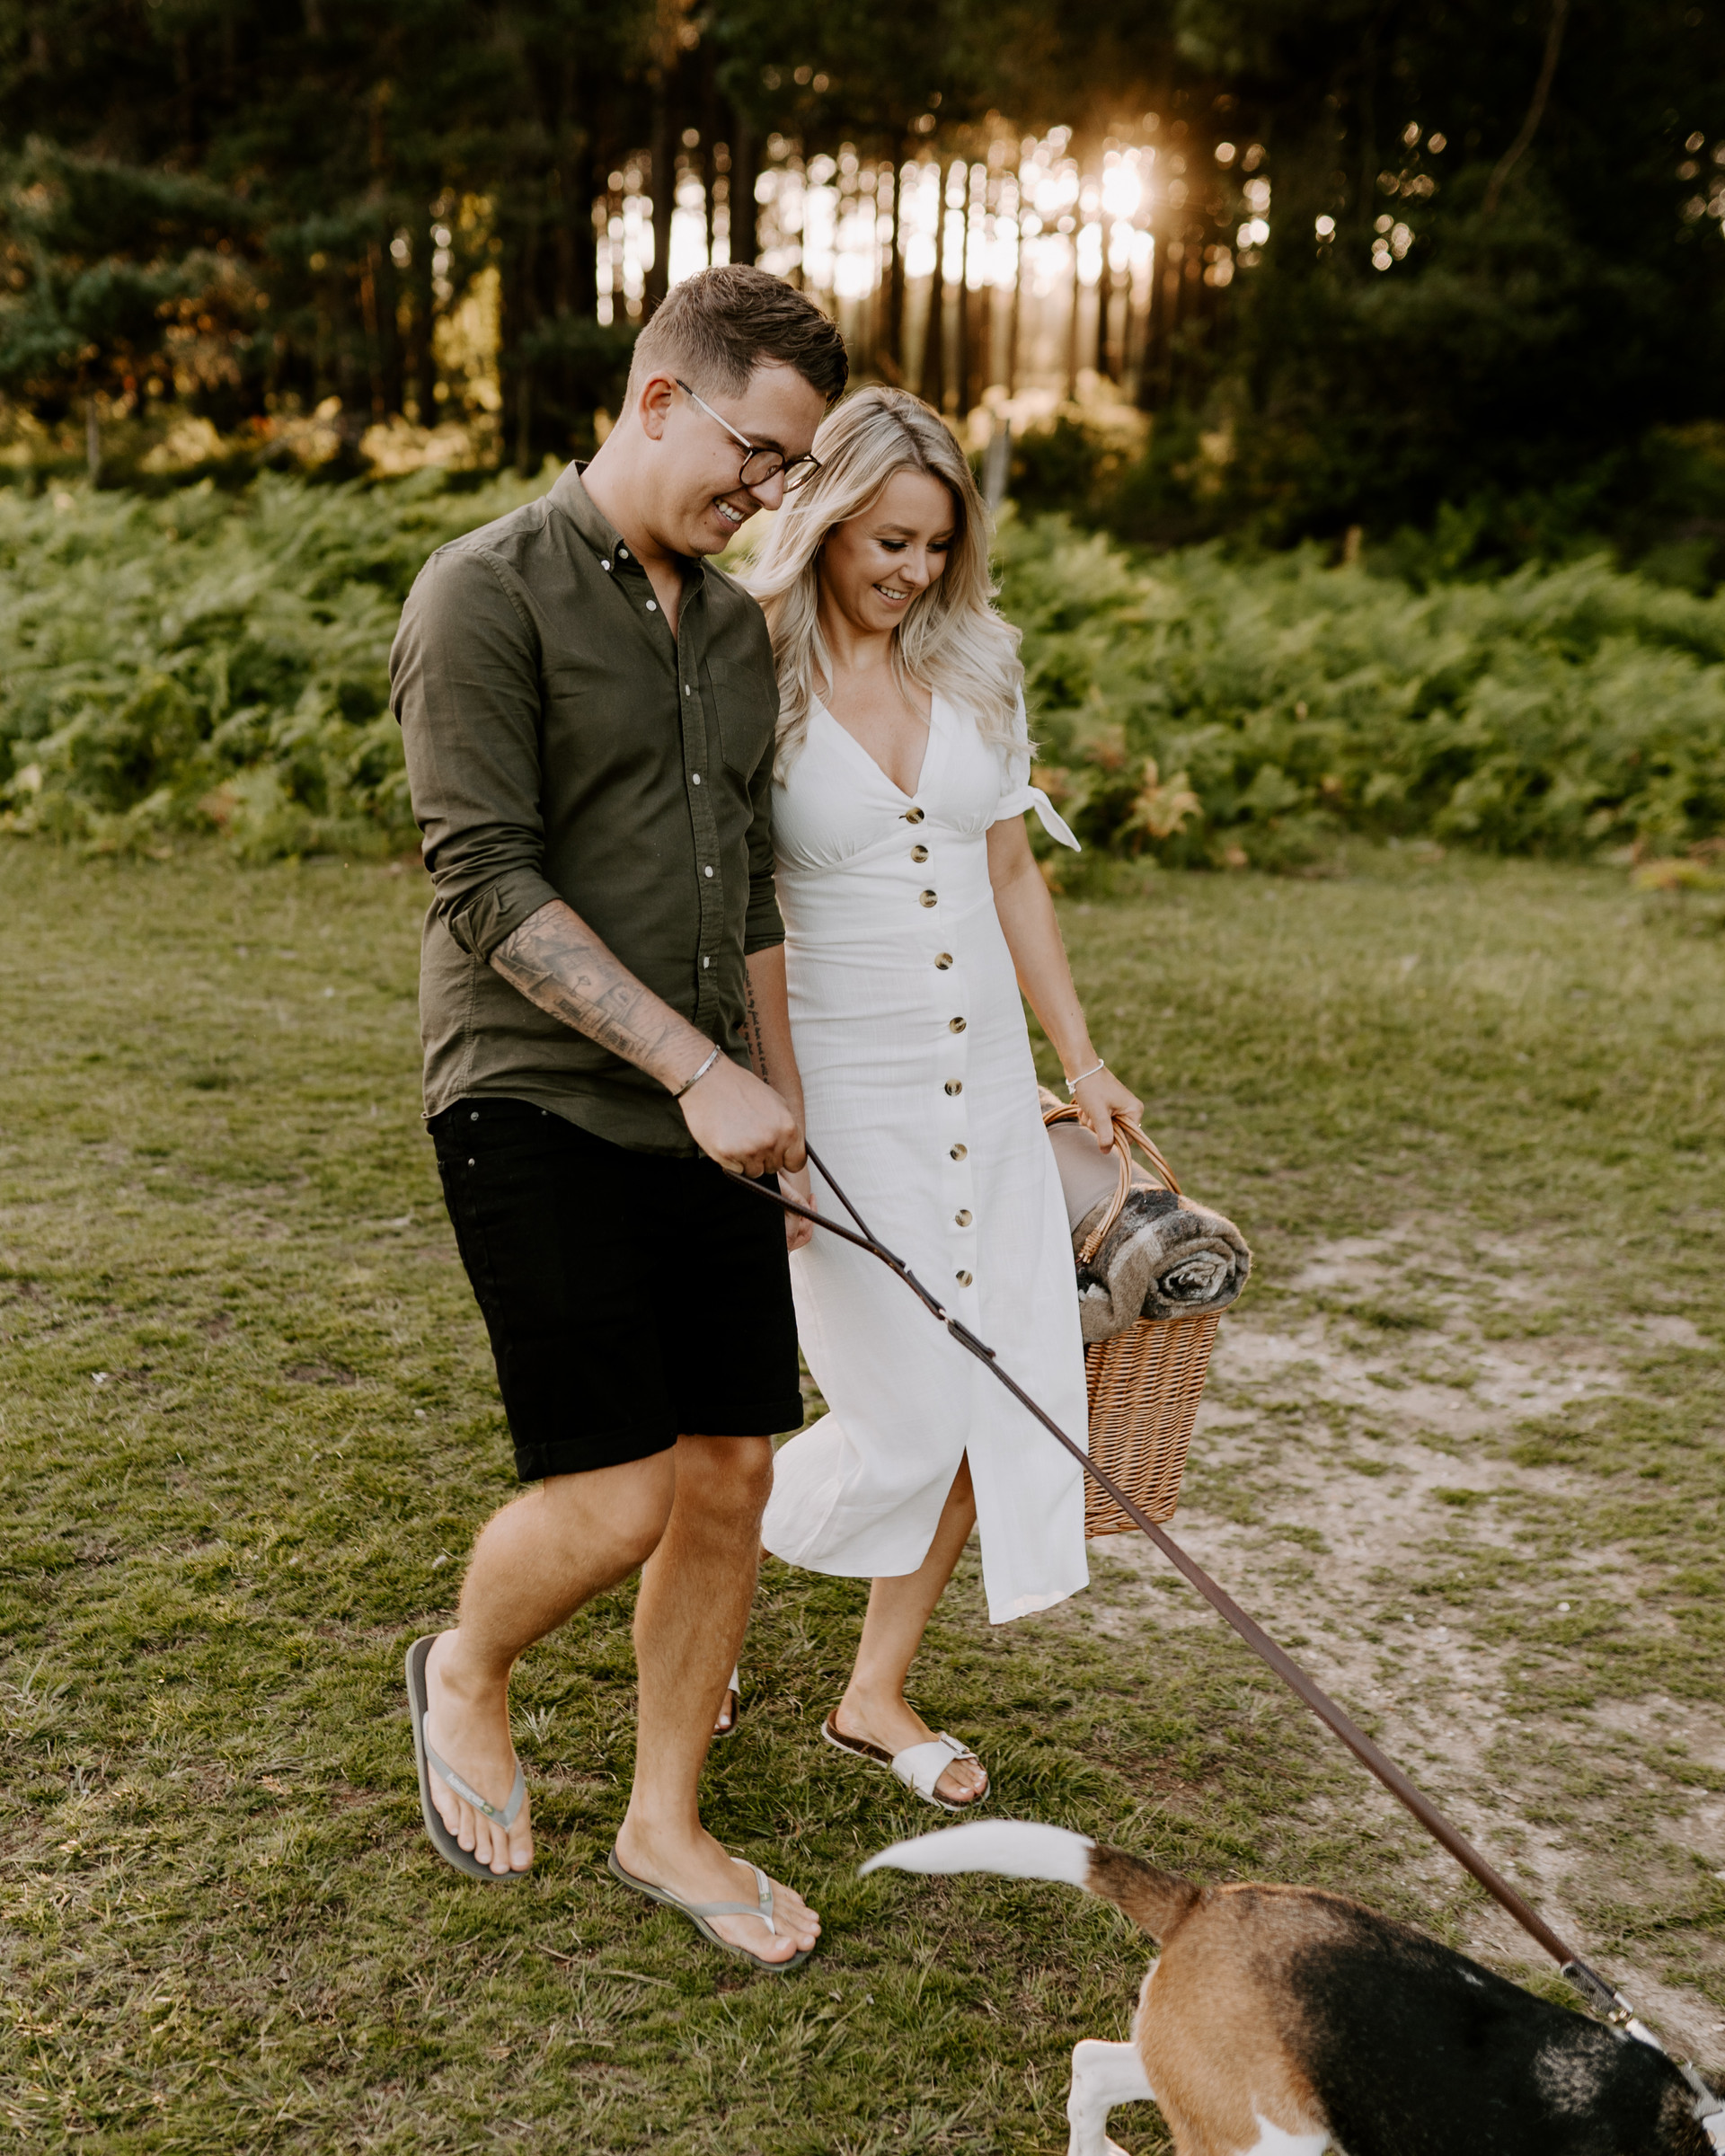 Sian & Mike | Couple Session-070.jpg